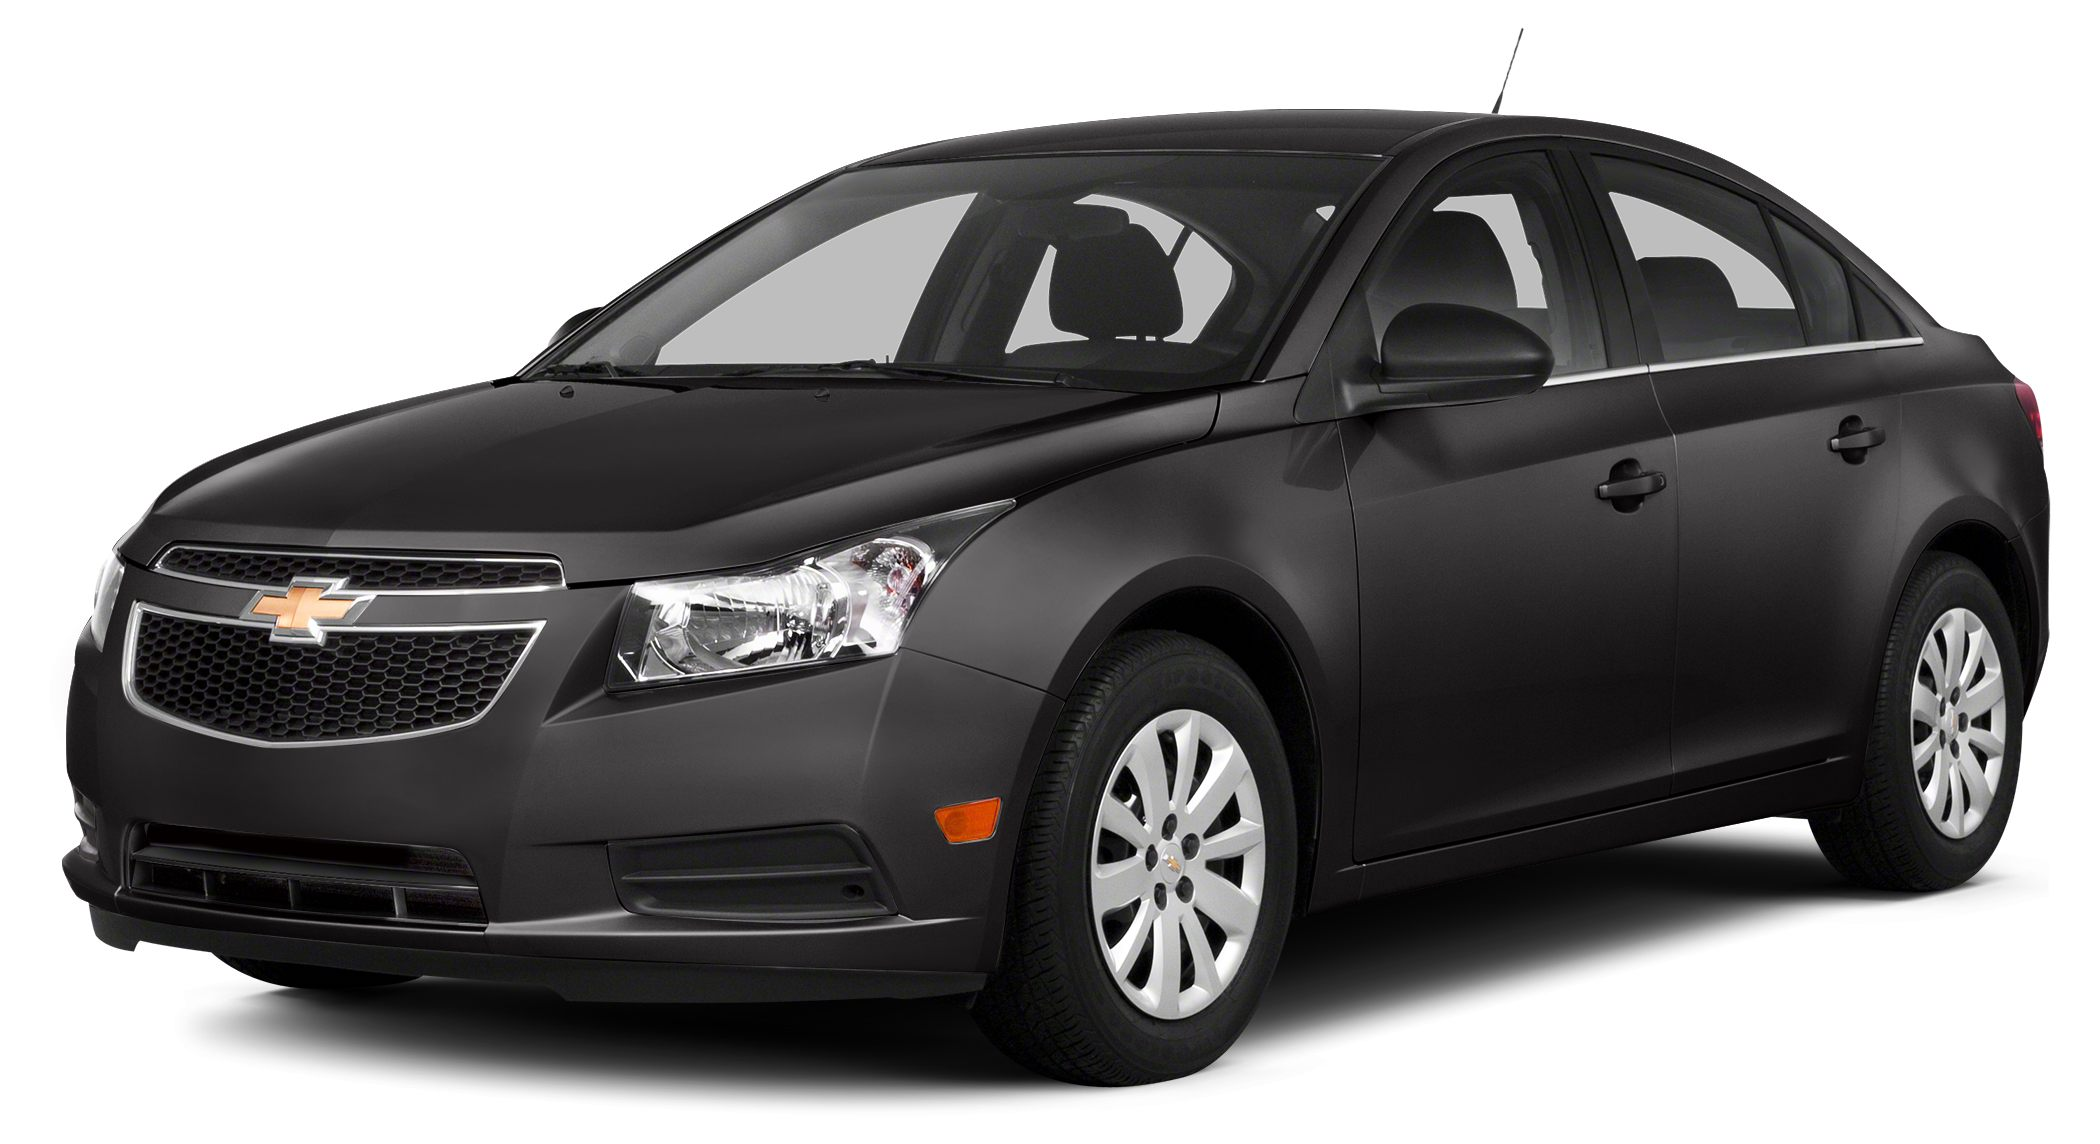 2014 Chevrolet Cruze 1LT For additional information on this vehicle pleasecontact Teresa in the In